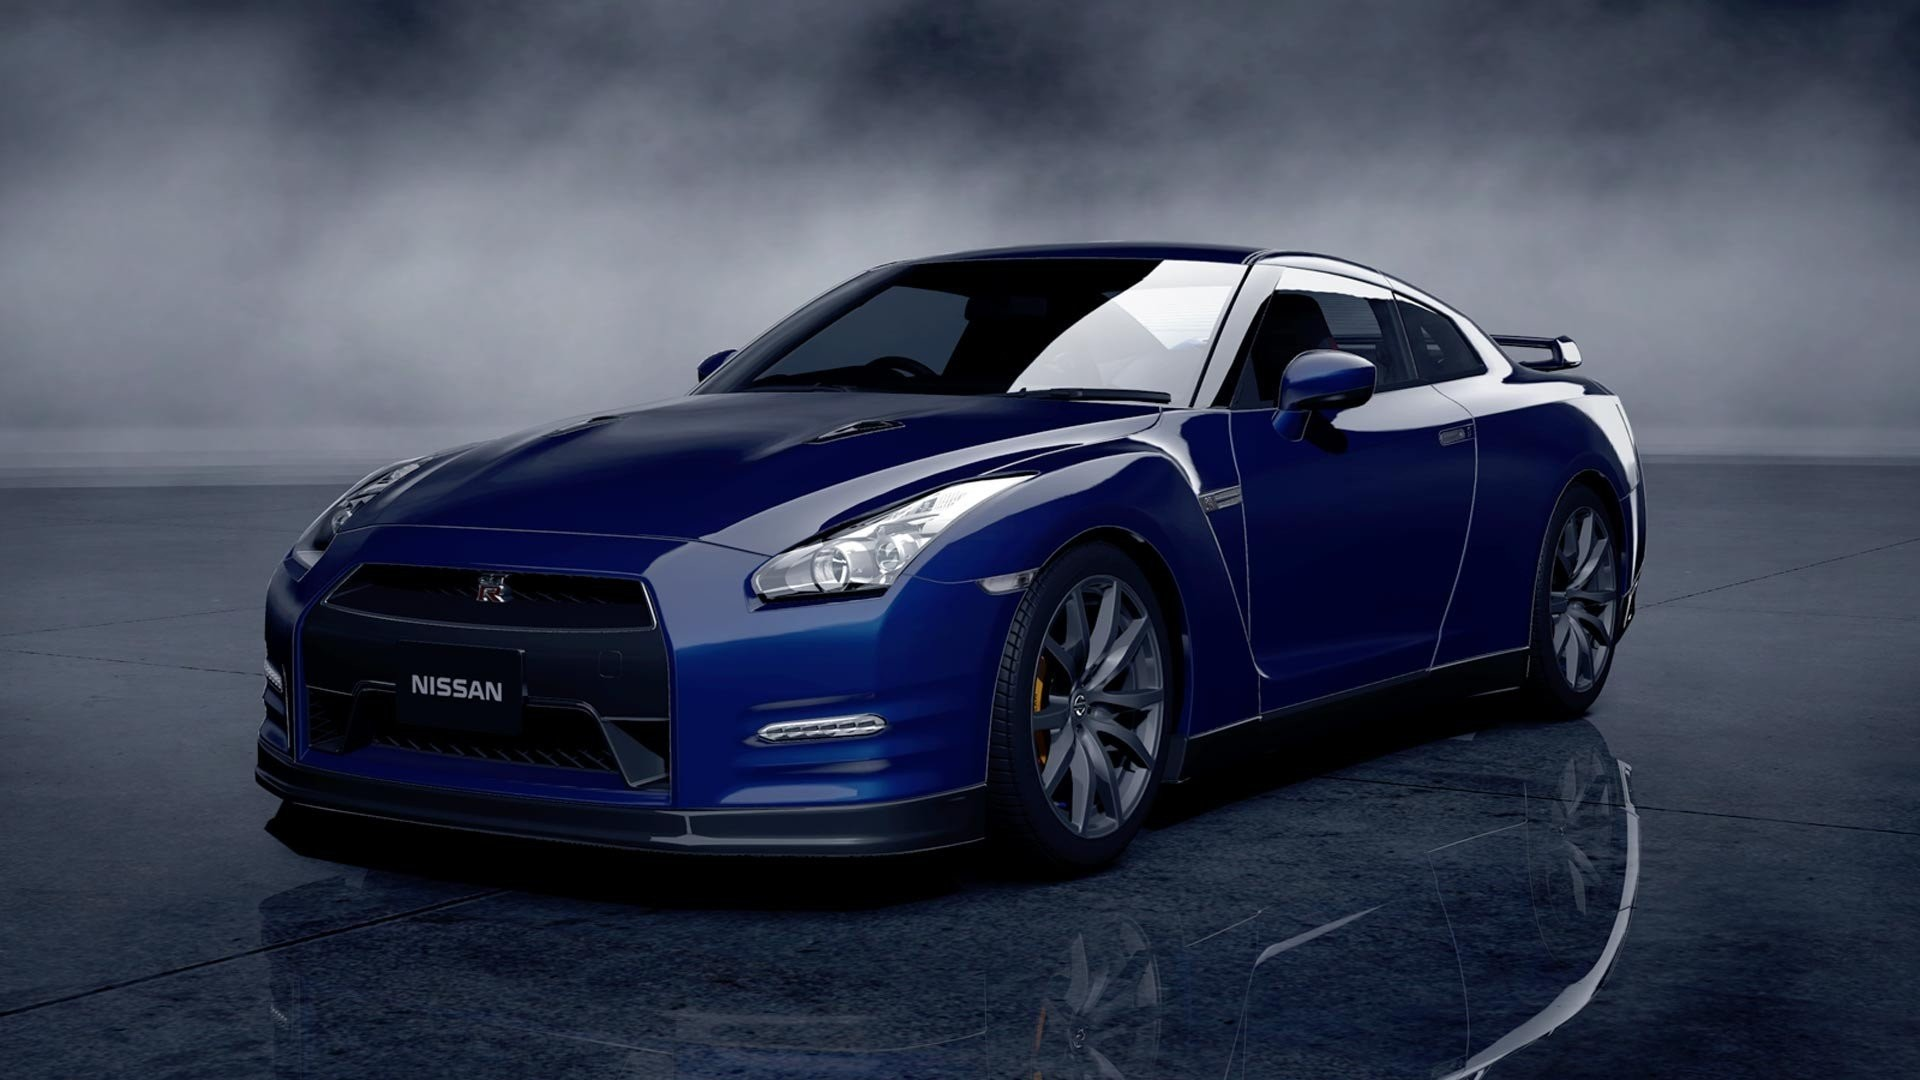 Nissan Gt R R35 Car Front Gates Hd Wallpaper.